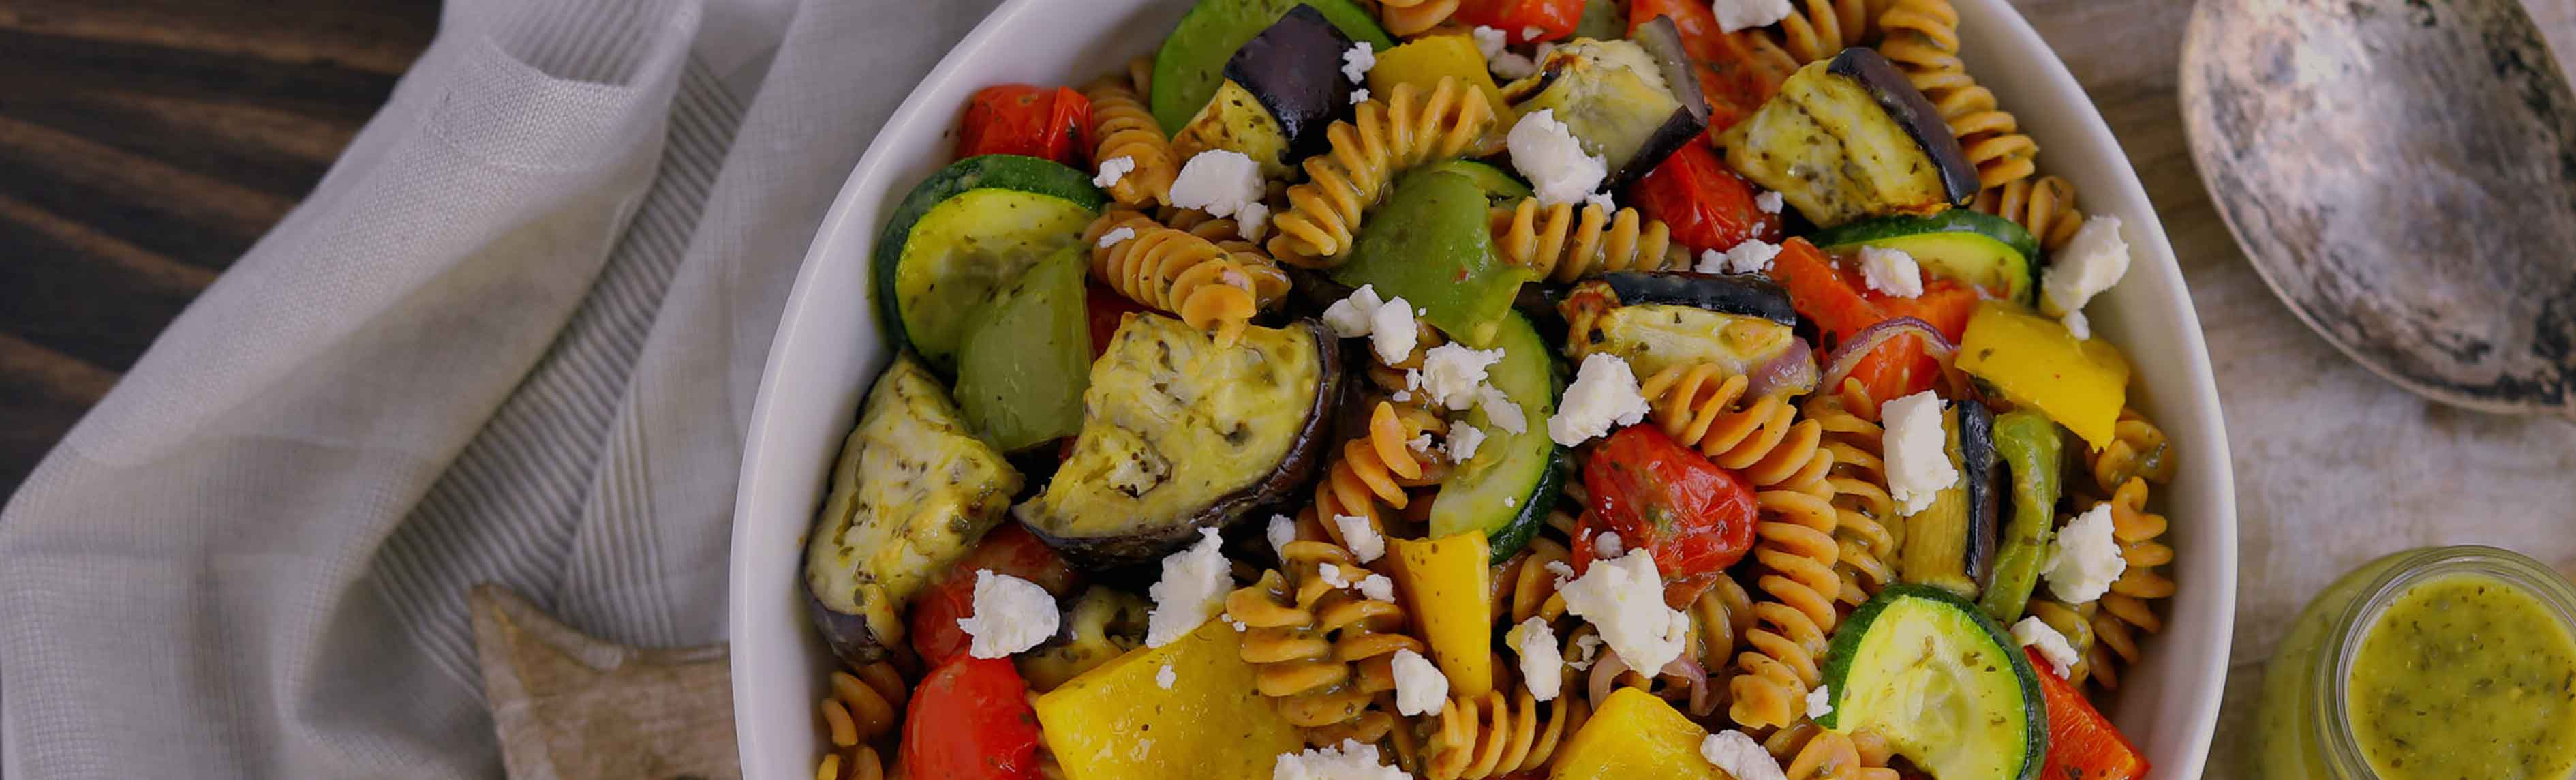 Roasted Vegetable and Goat Cheese Pasta Salad